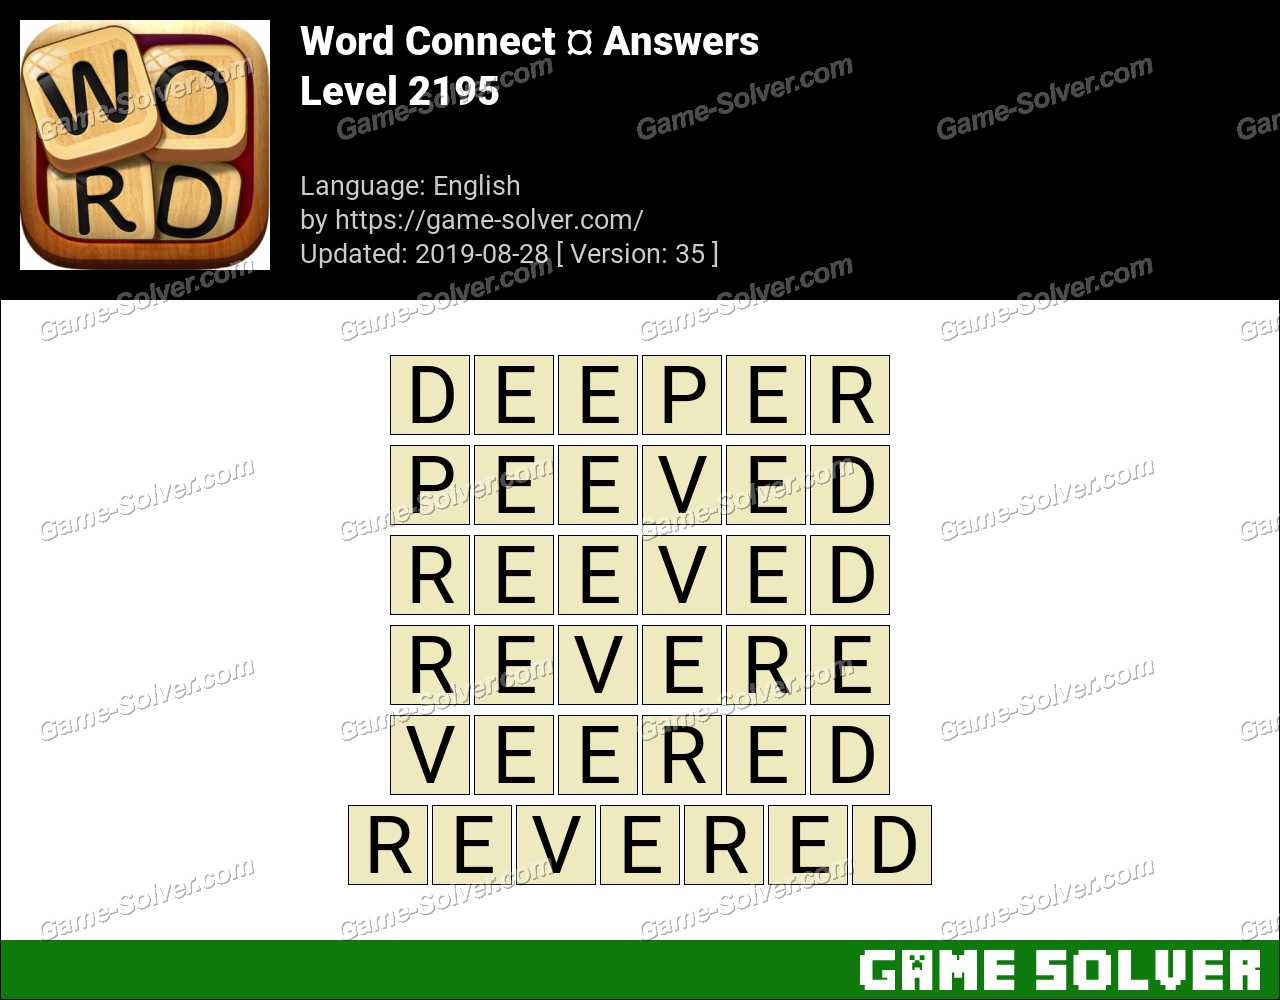 Word Connect Level 2195 Answers